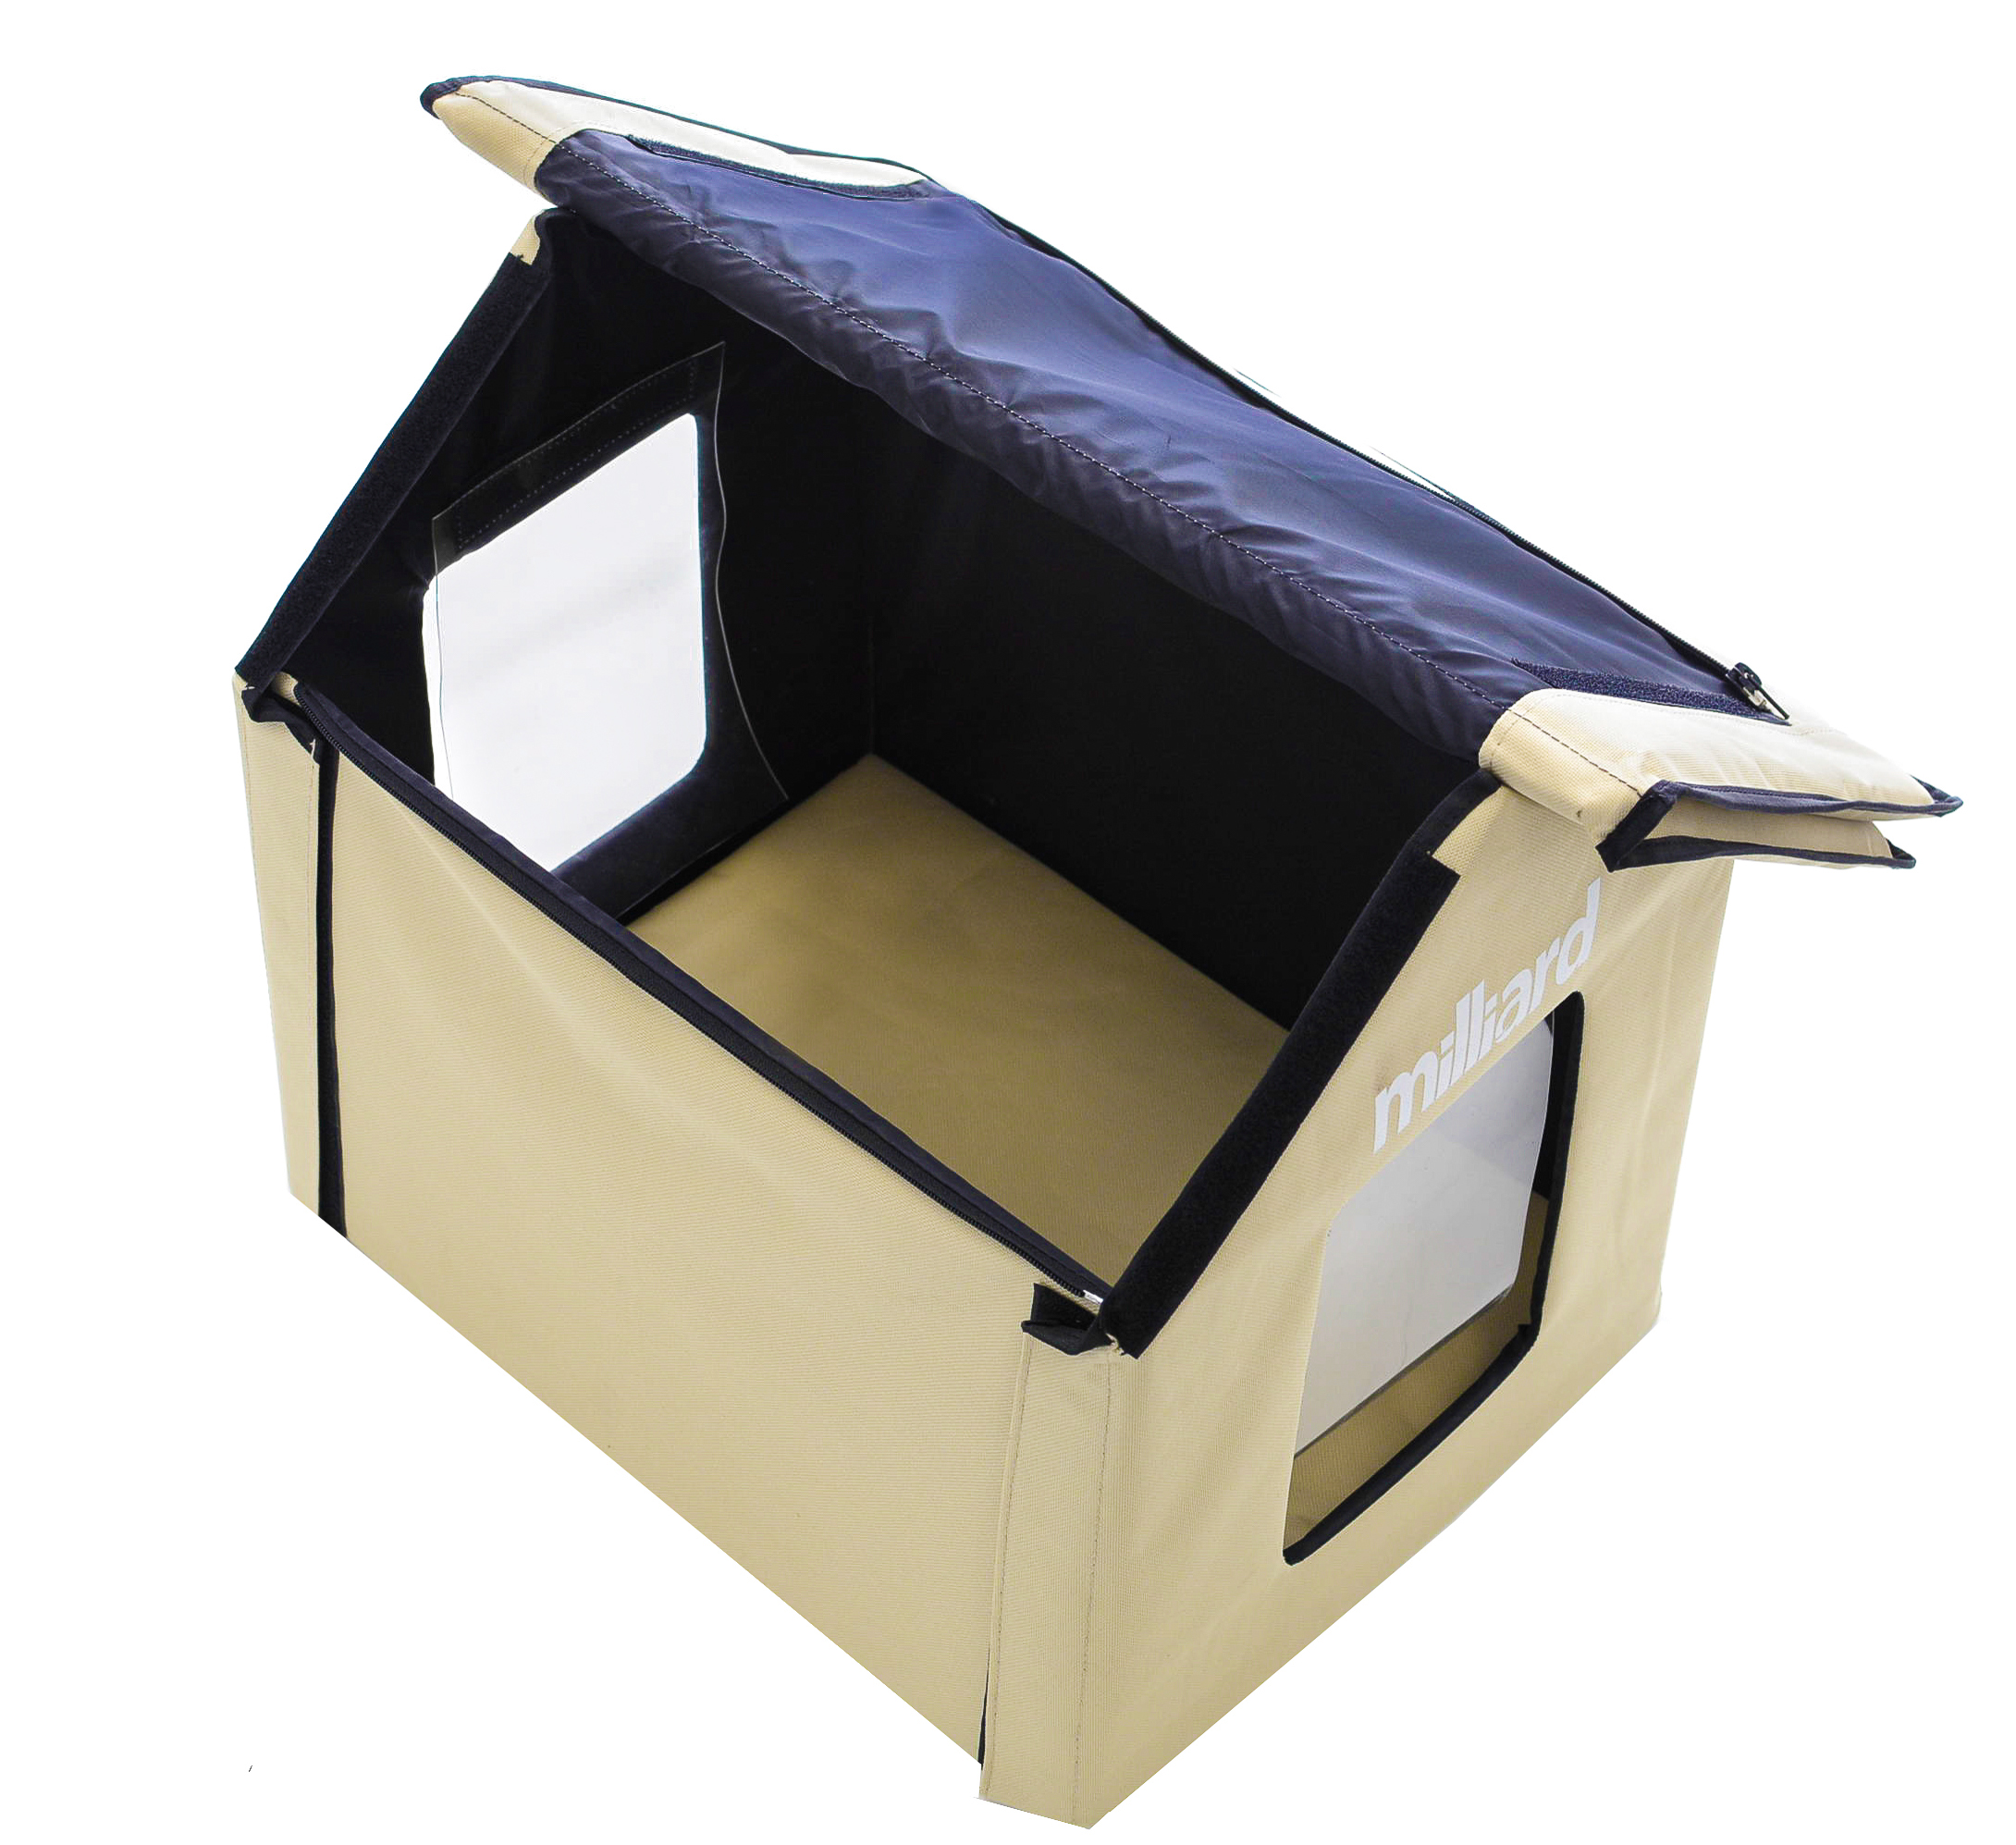 Portable Shelter Dog : Portable outdoor pet house milliard bedding the